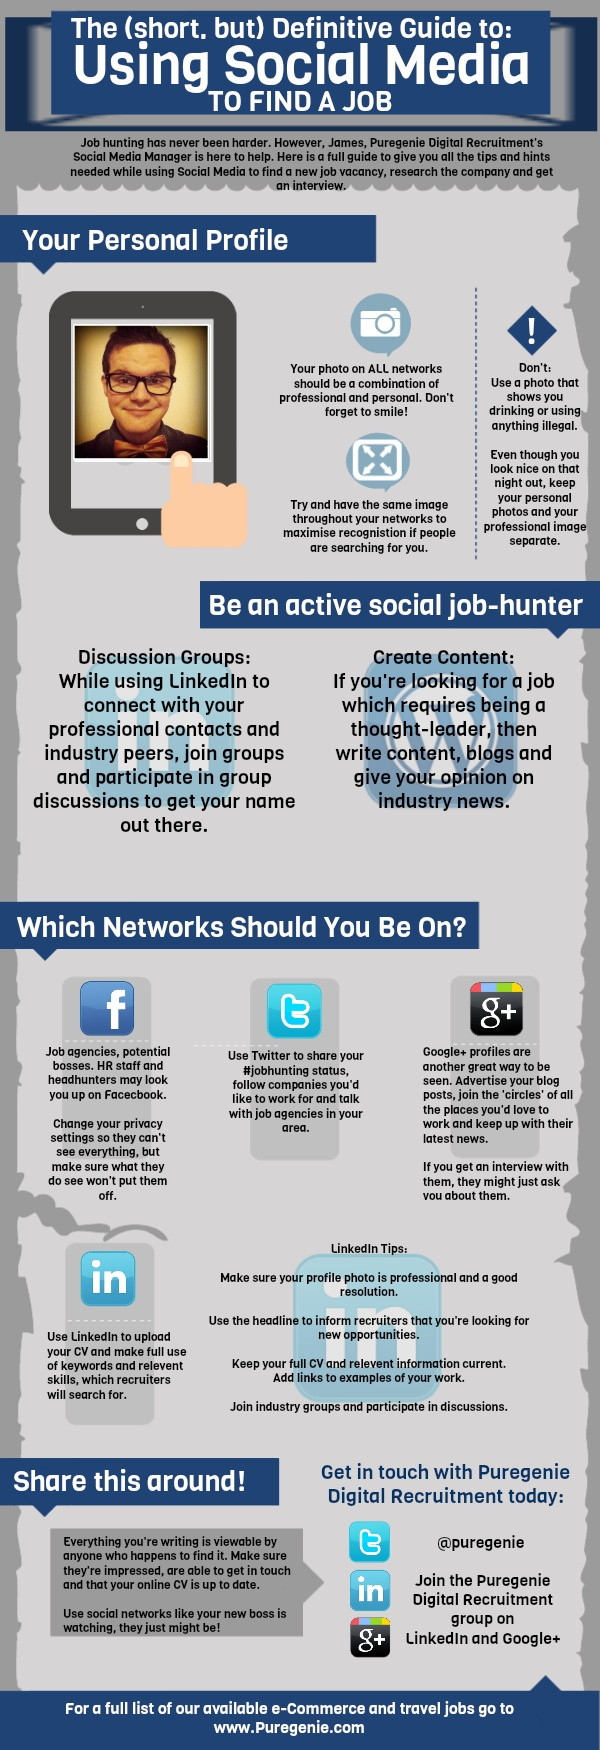 The (short, But) Definitive Guide To Using Social Media To Find A Job [